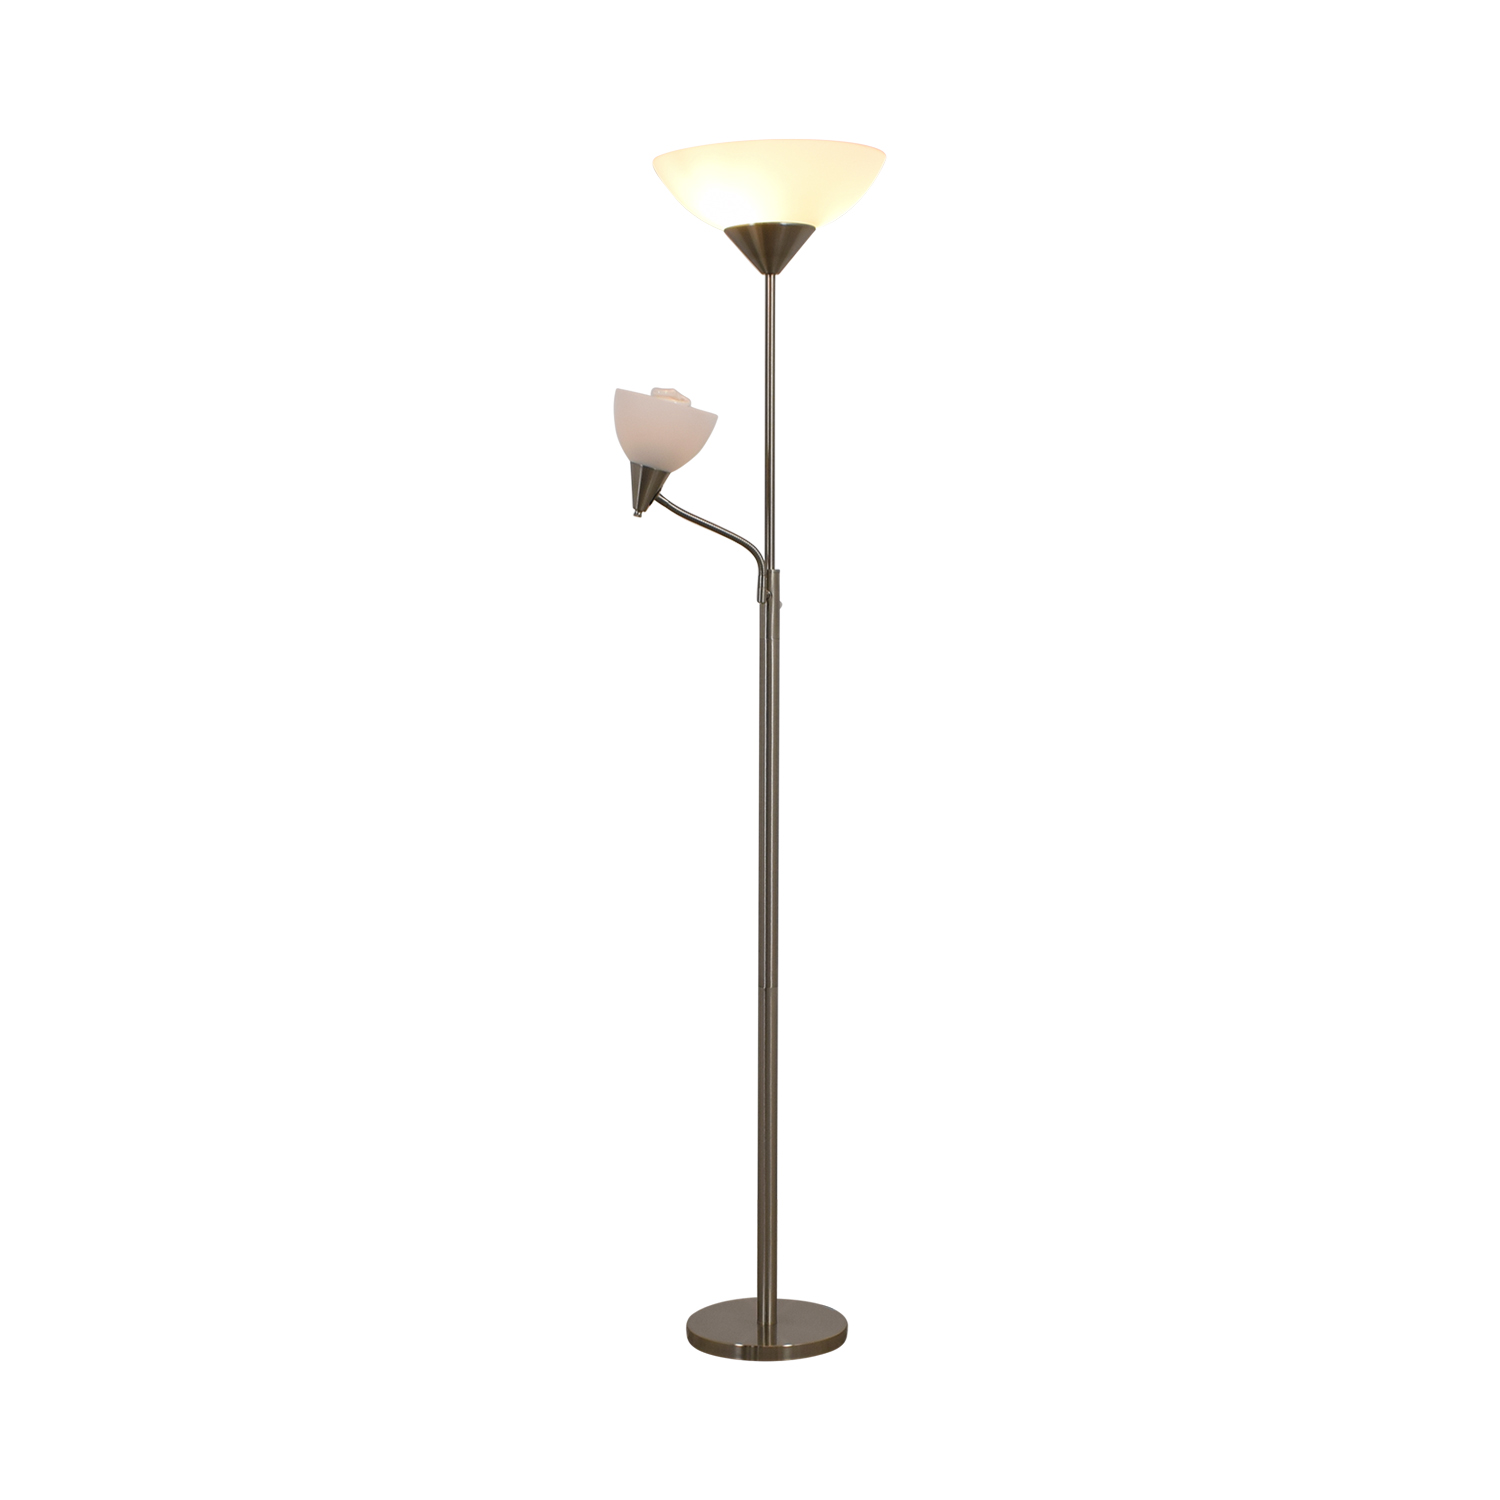 Bed Bath and Beyond Bed Bath and Beyond Silver Floor Lamp nyc